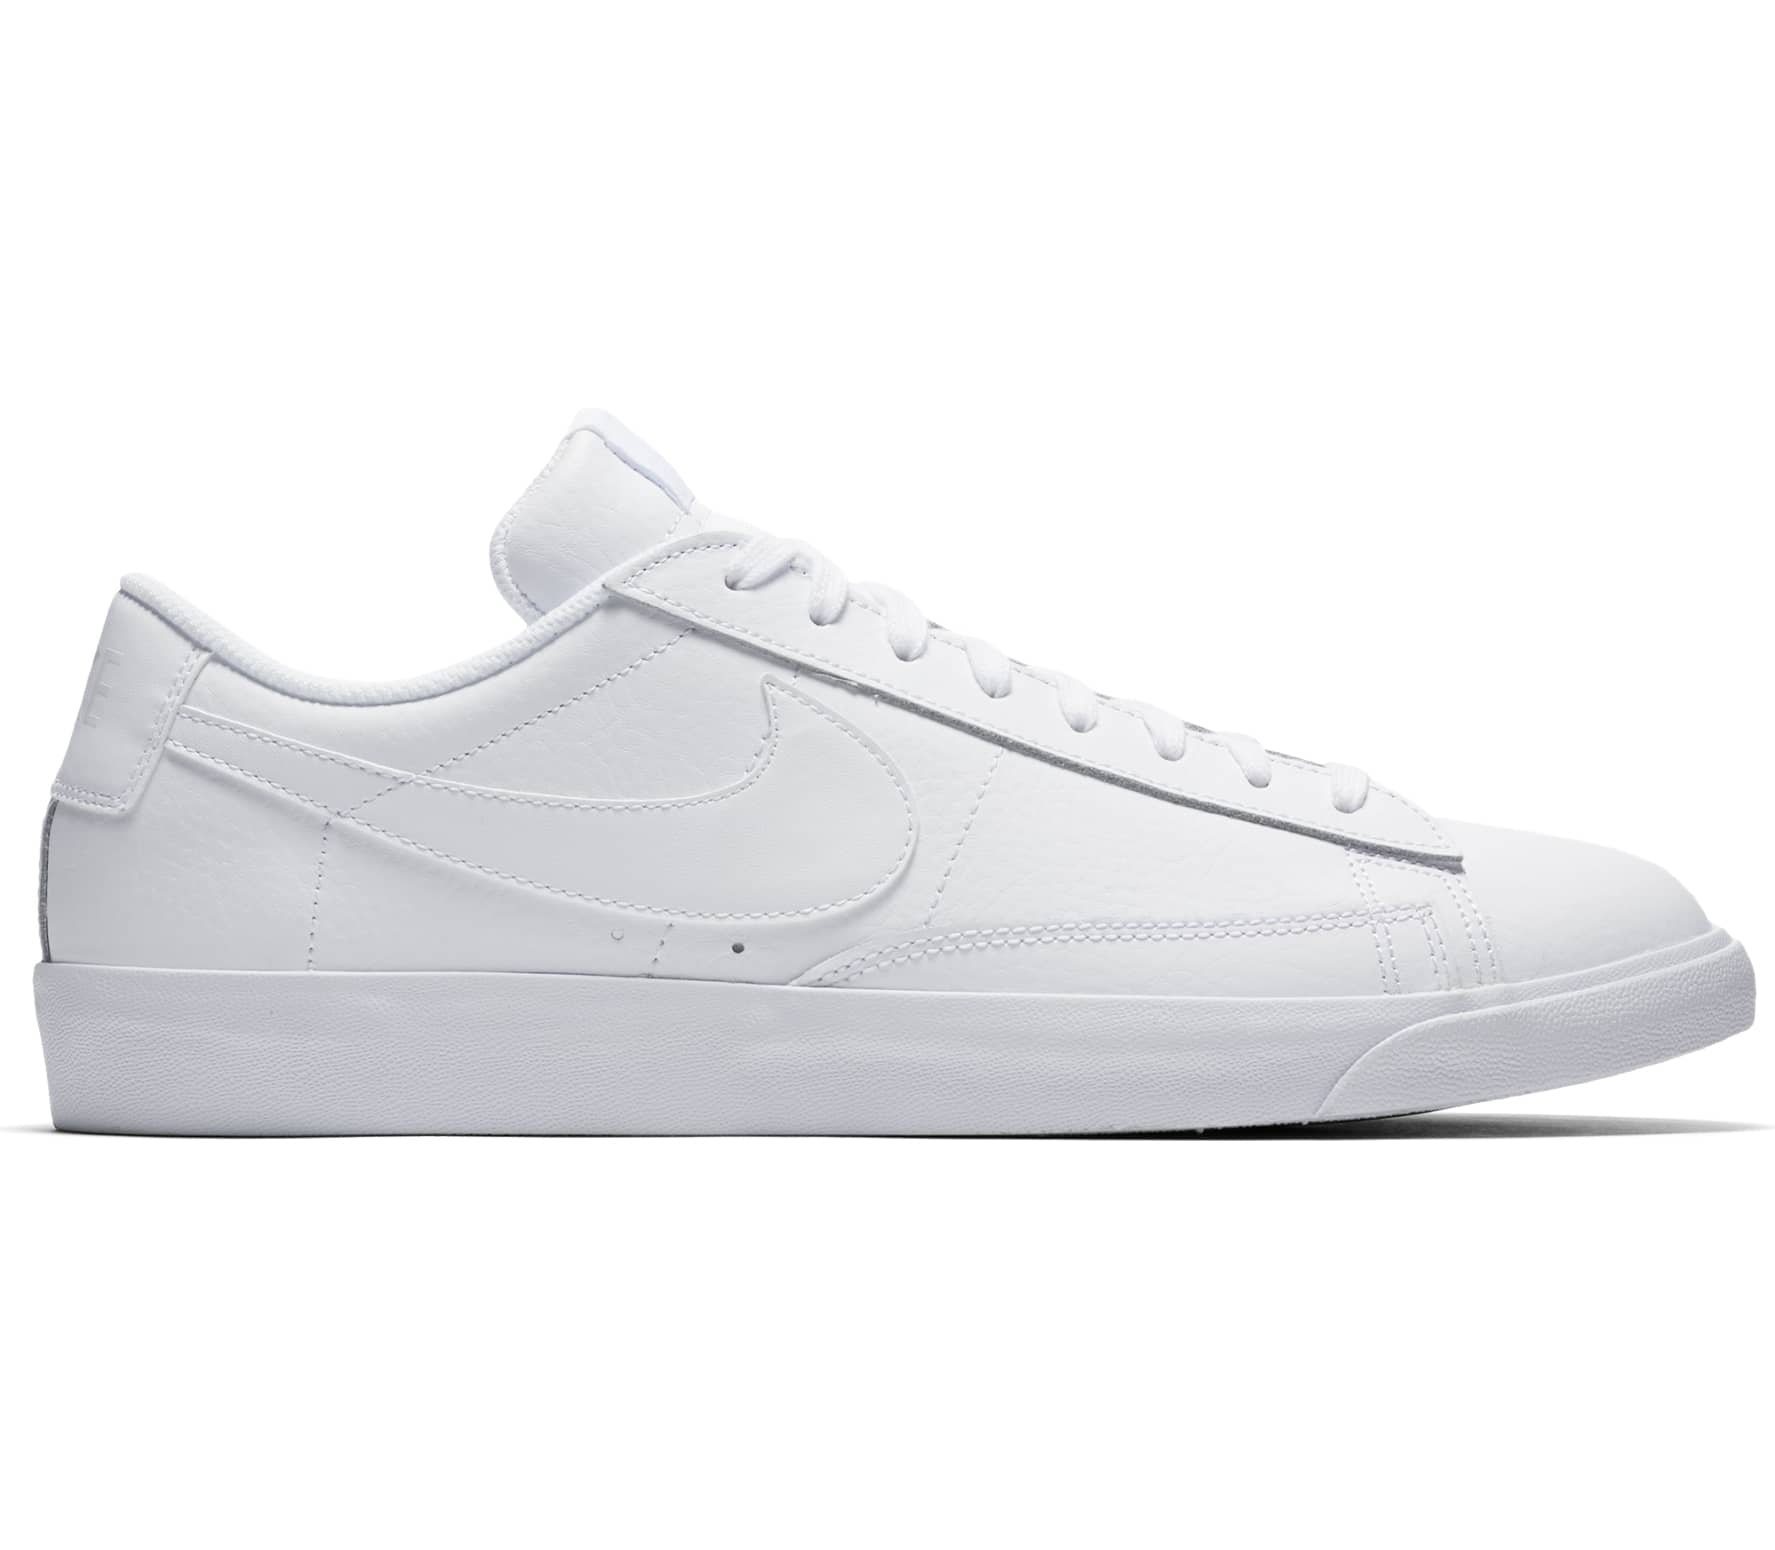 competitive price 71f75 a9967 Nike - BLAZER LOW LE Herren Sneaker (weiß)